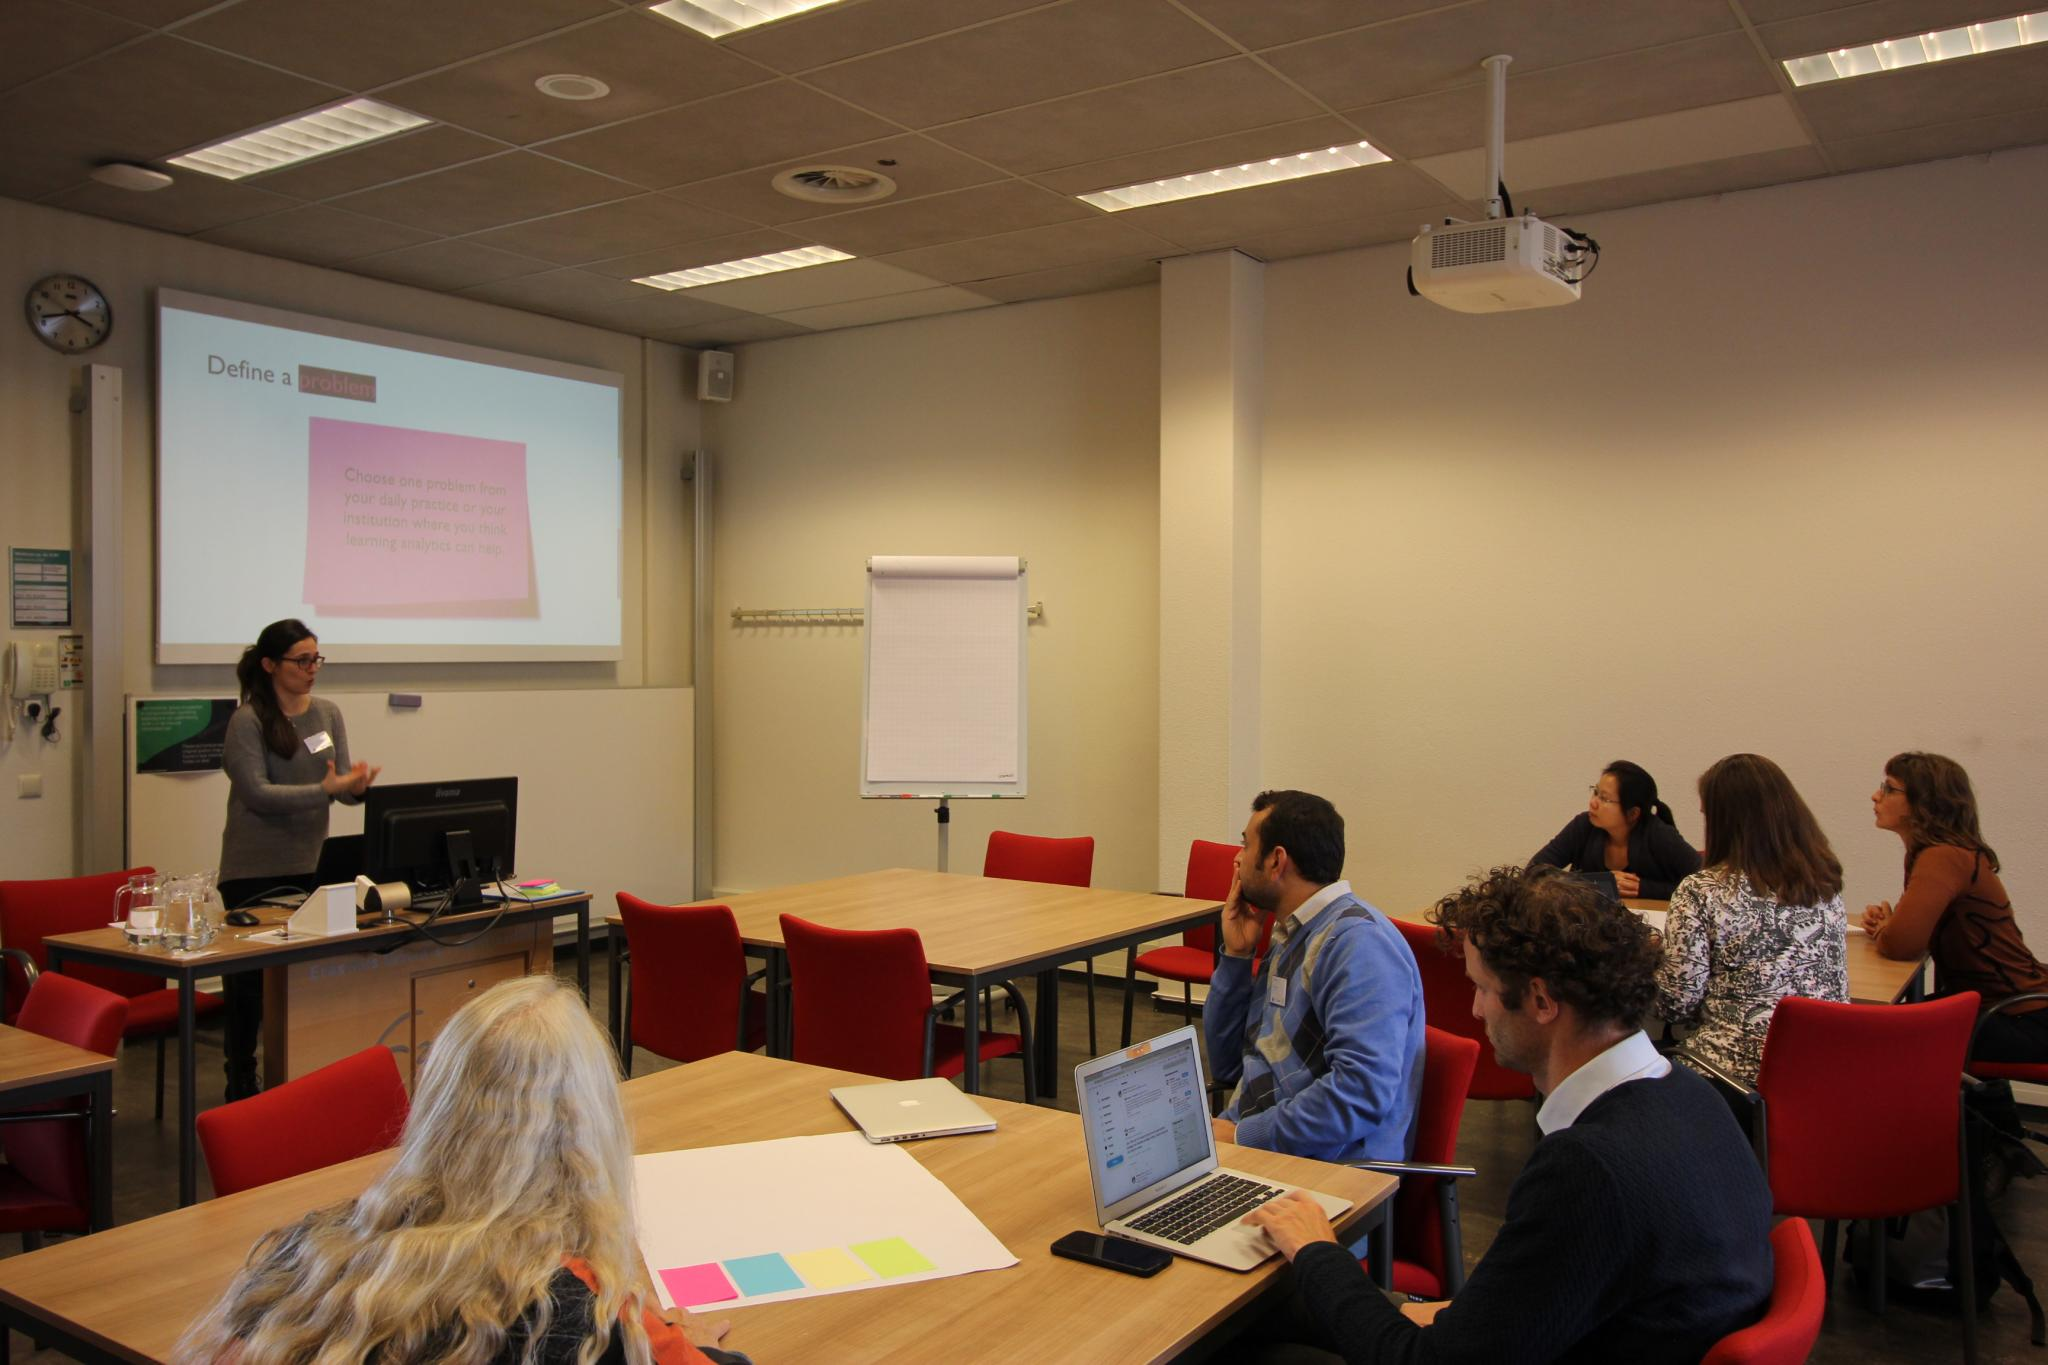 Ioana Jivet in action, in her interactive workshop on designing a learning analytics dashboard